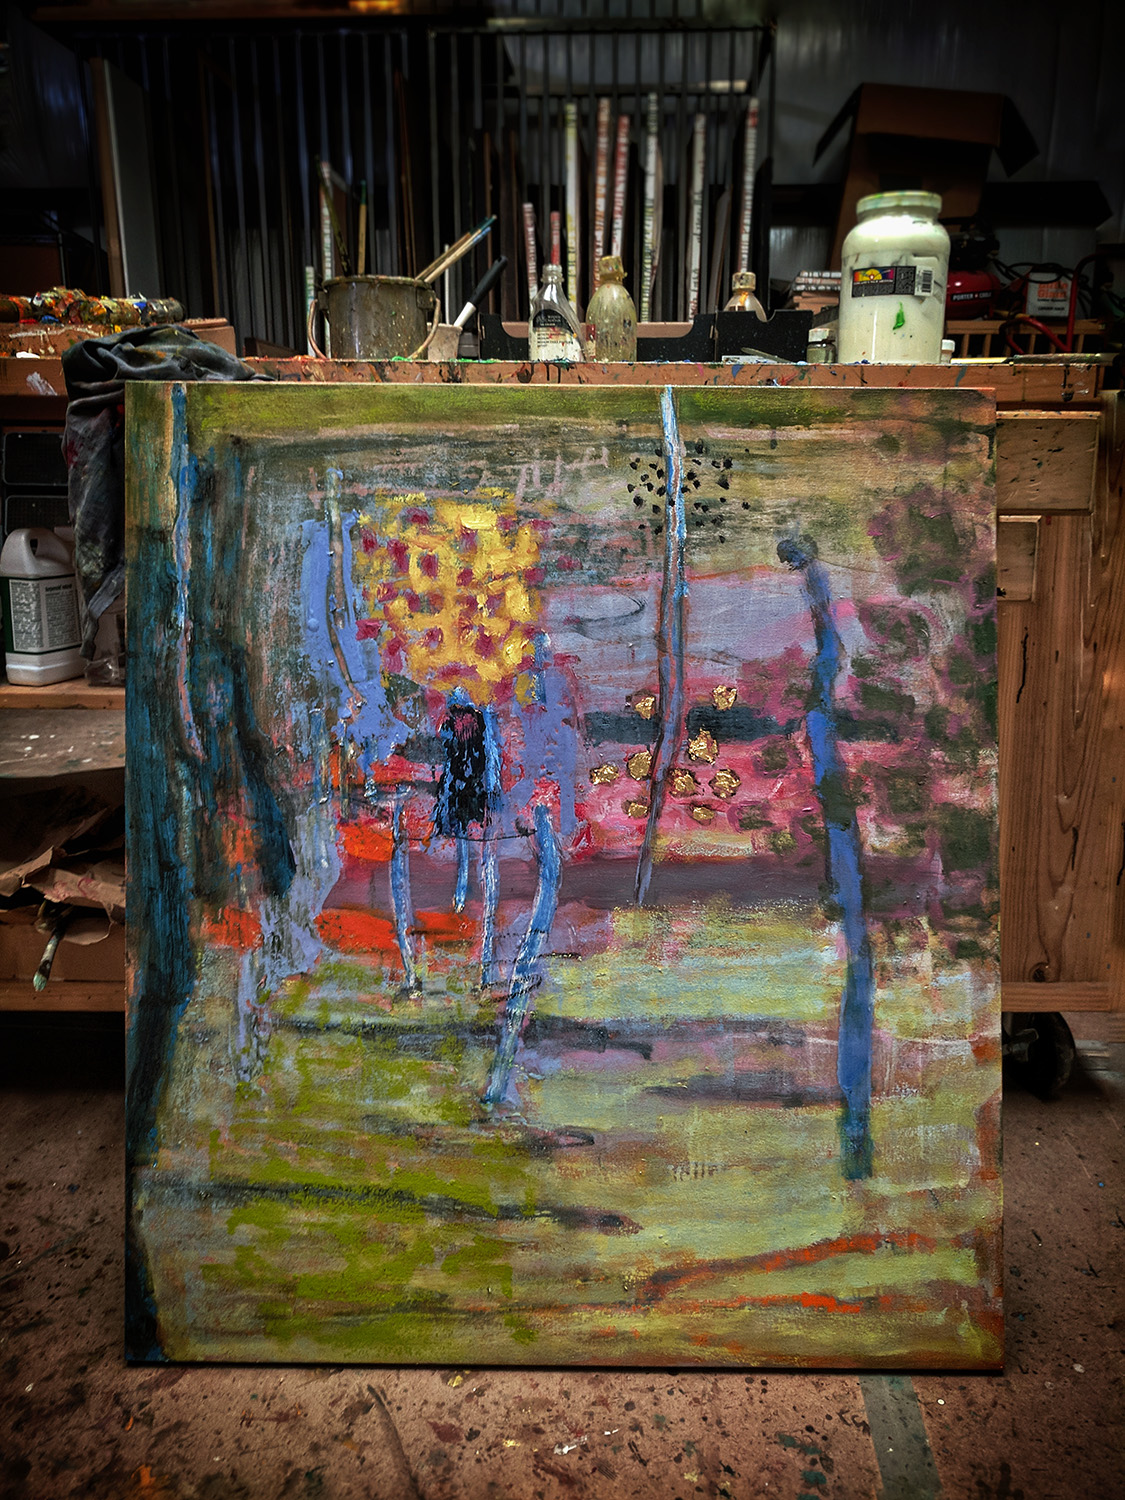 oil painting in progress at the studio in Santa Fe, NM